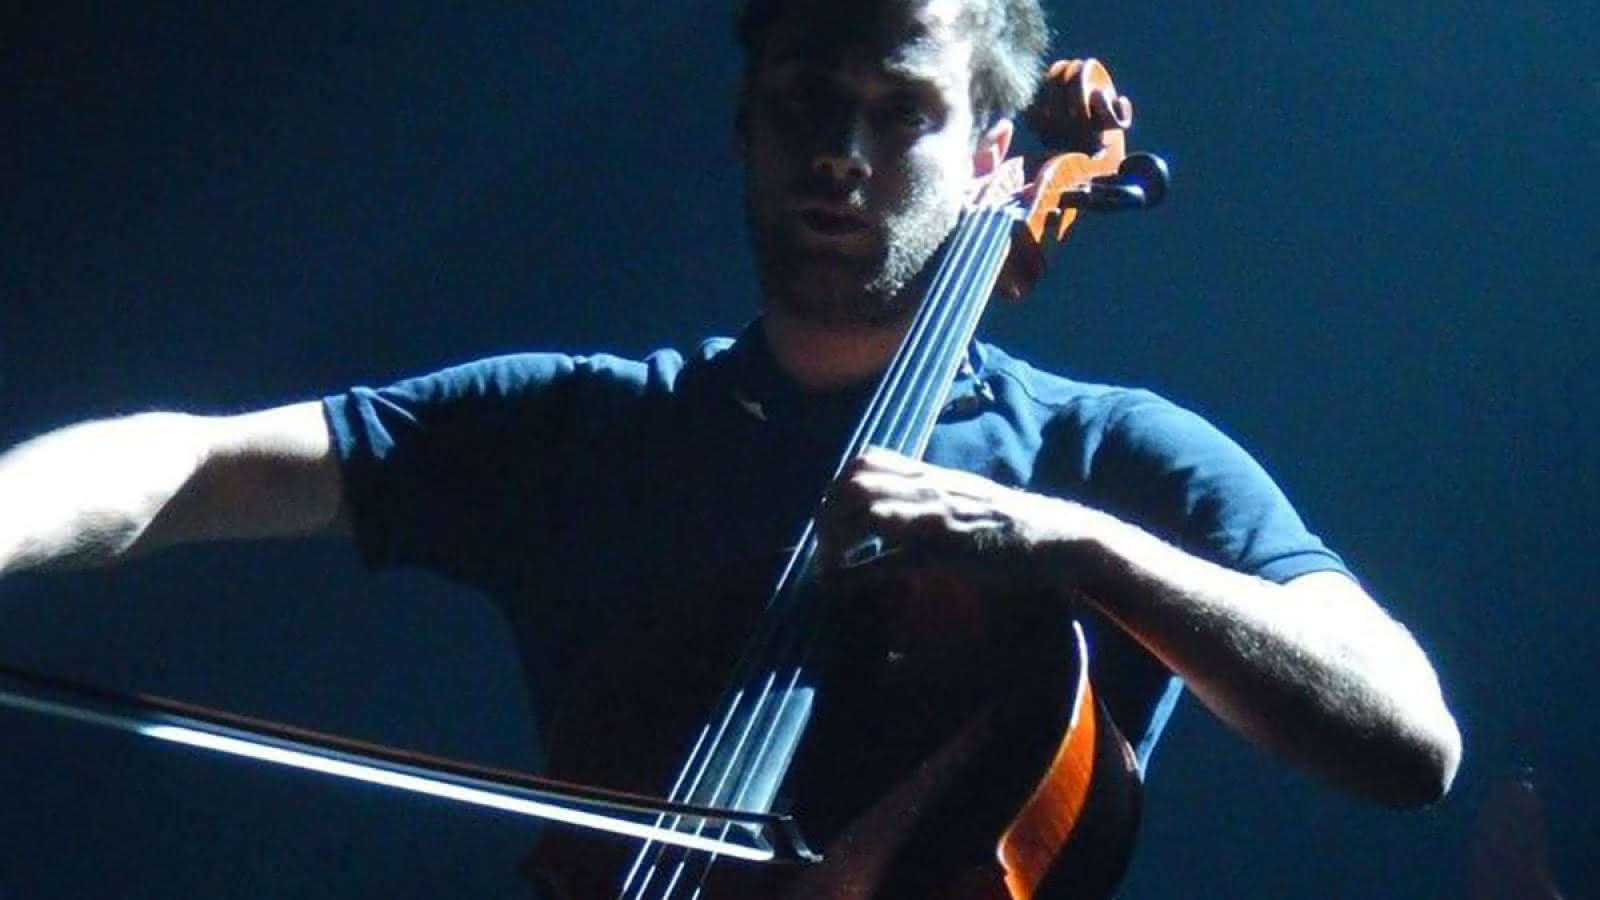 © Moment musical - Guillaume Bongiraud au violoncelle